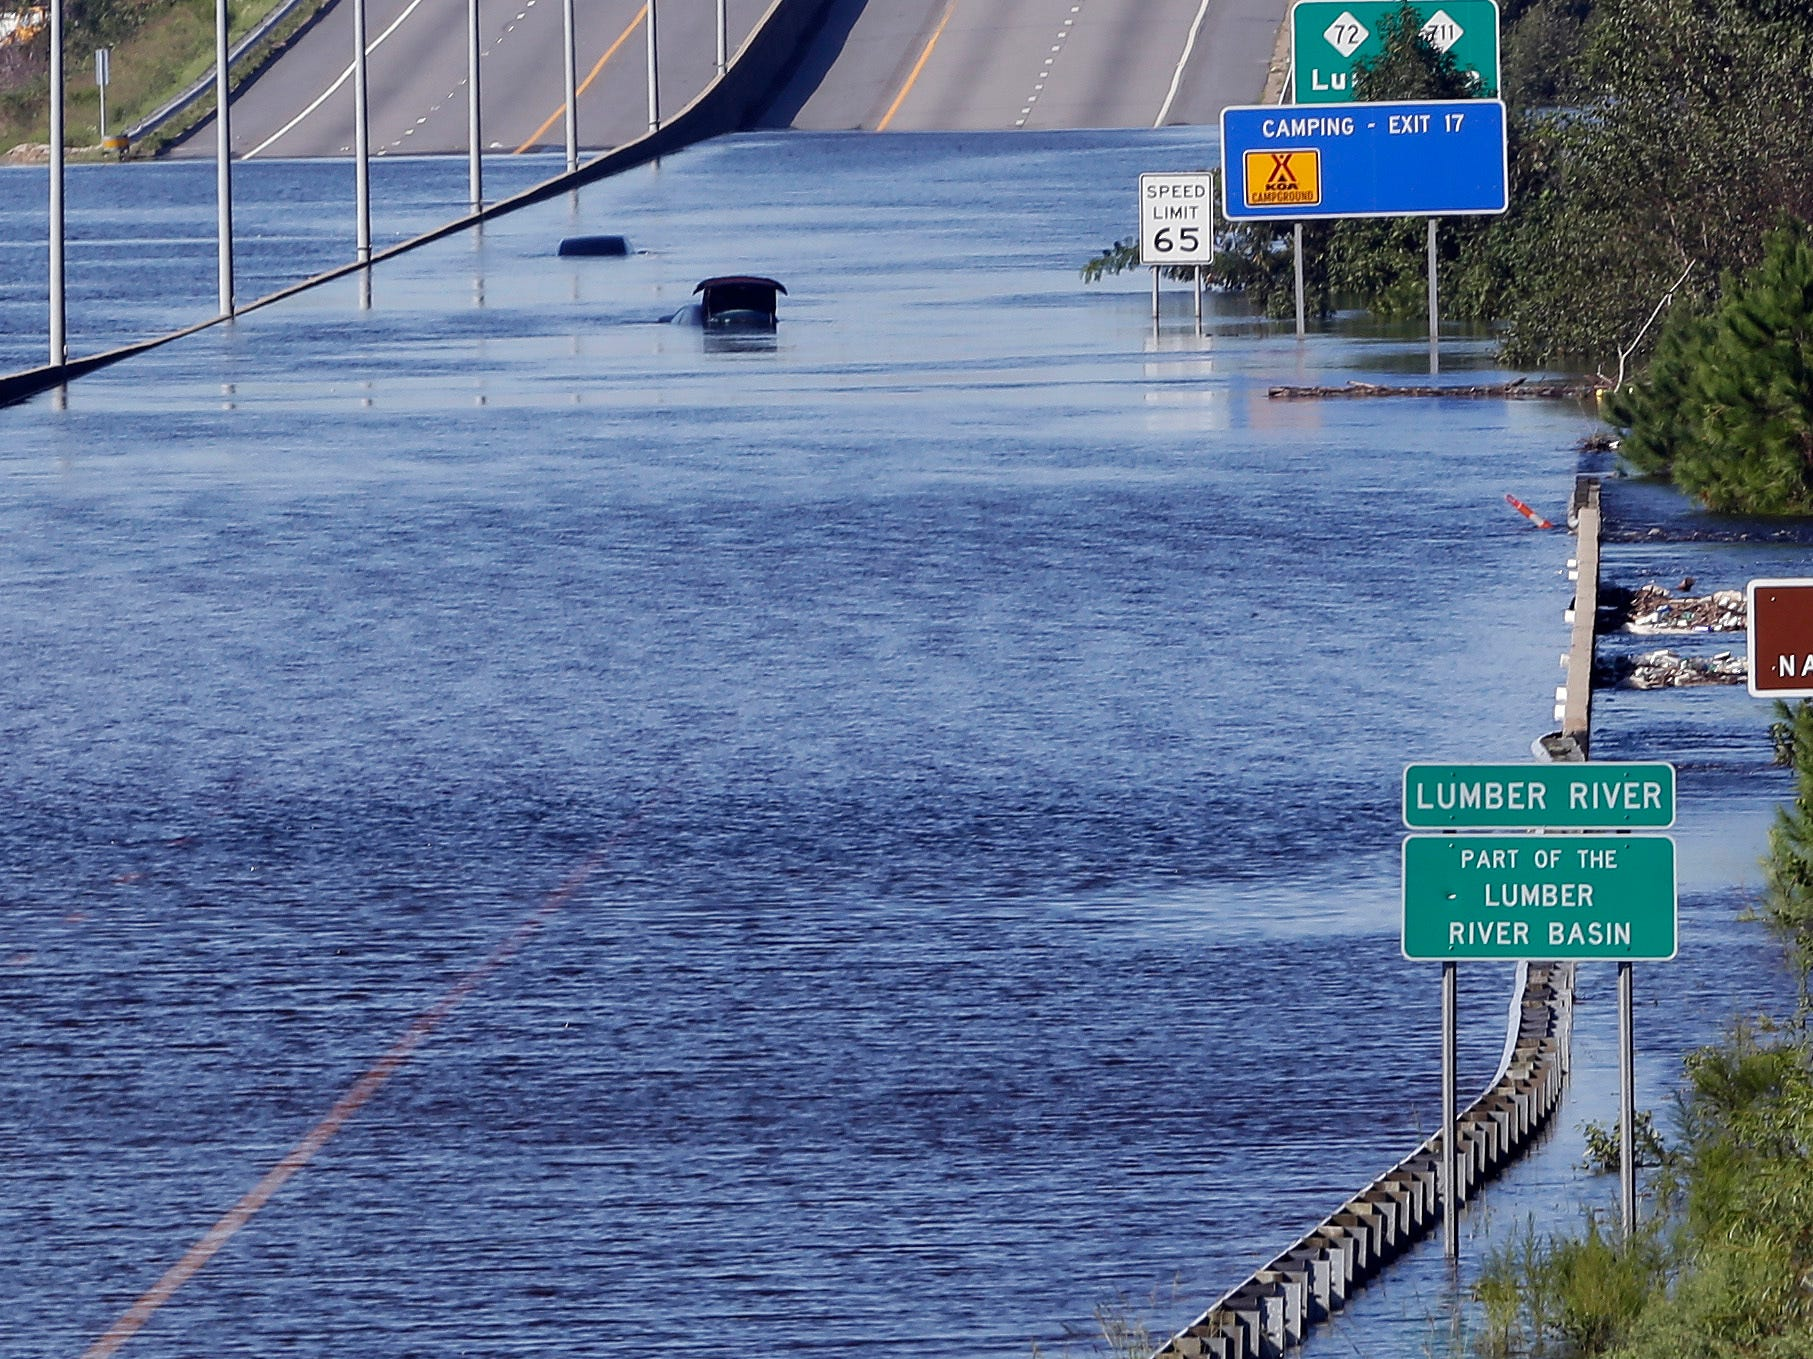 The Lumber River overflows onto a stretch Interstate 95 in Lumberton, N.C., Tuesday, Sept. 18, 2018, following flooding from Hurricane Florence.